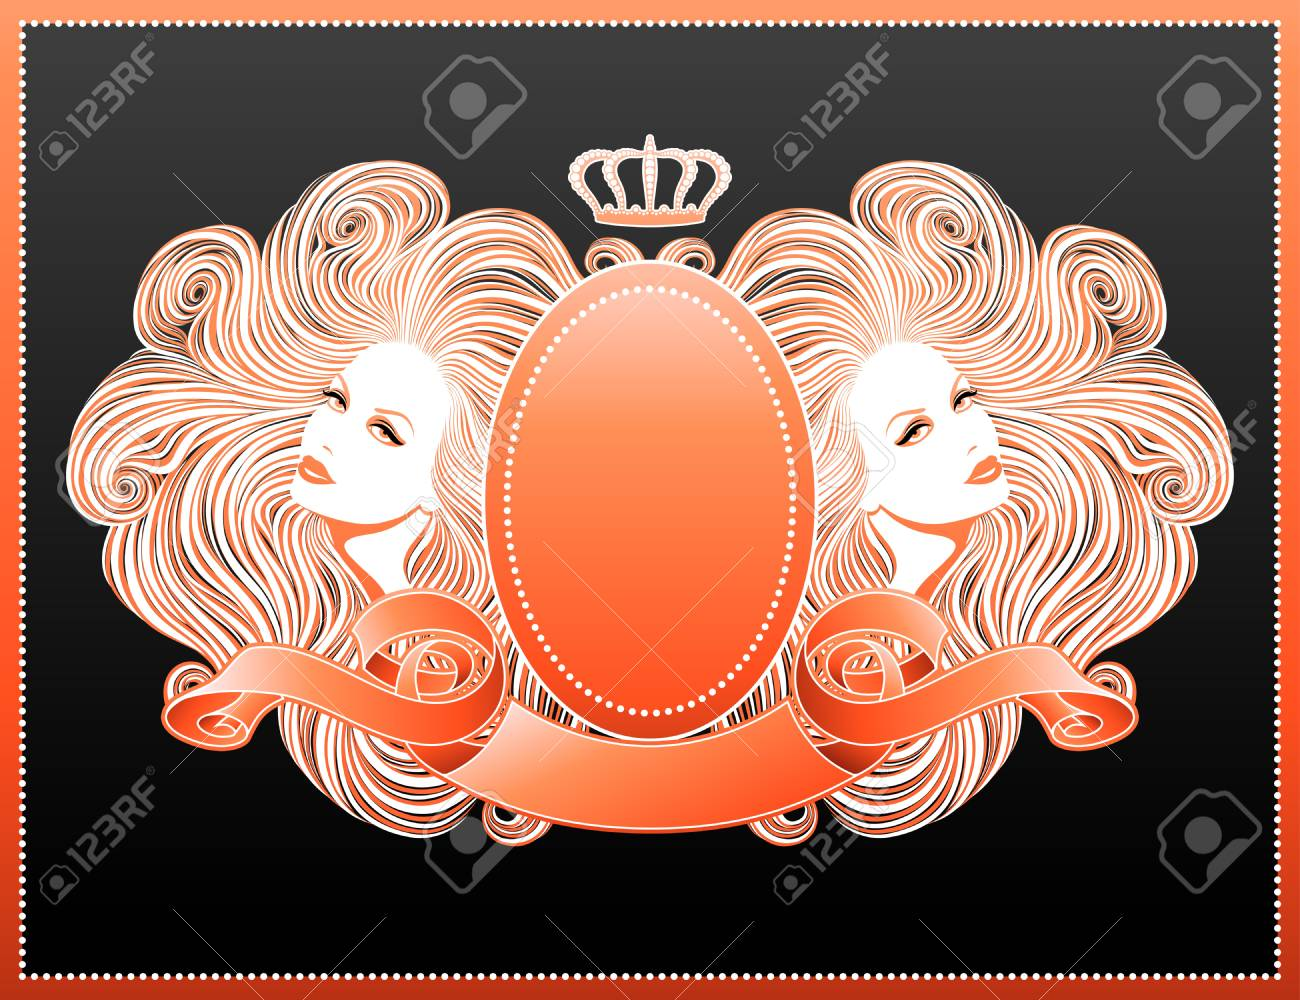 Glamour forever. Beautiful vector illustration. Stock Vector - 9183677